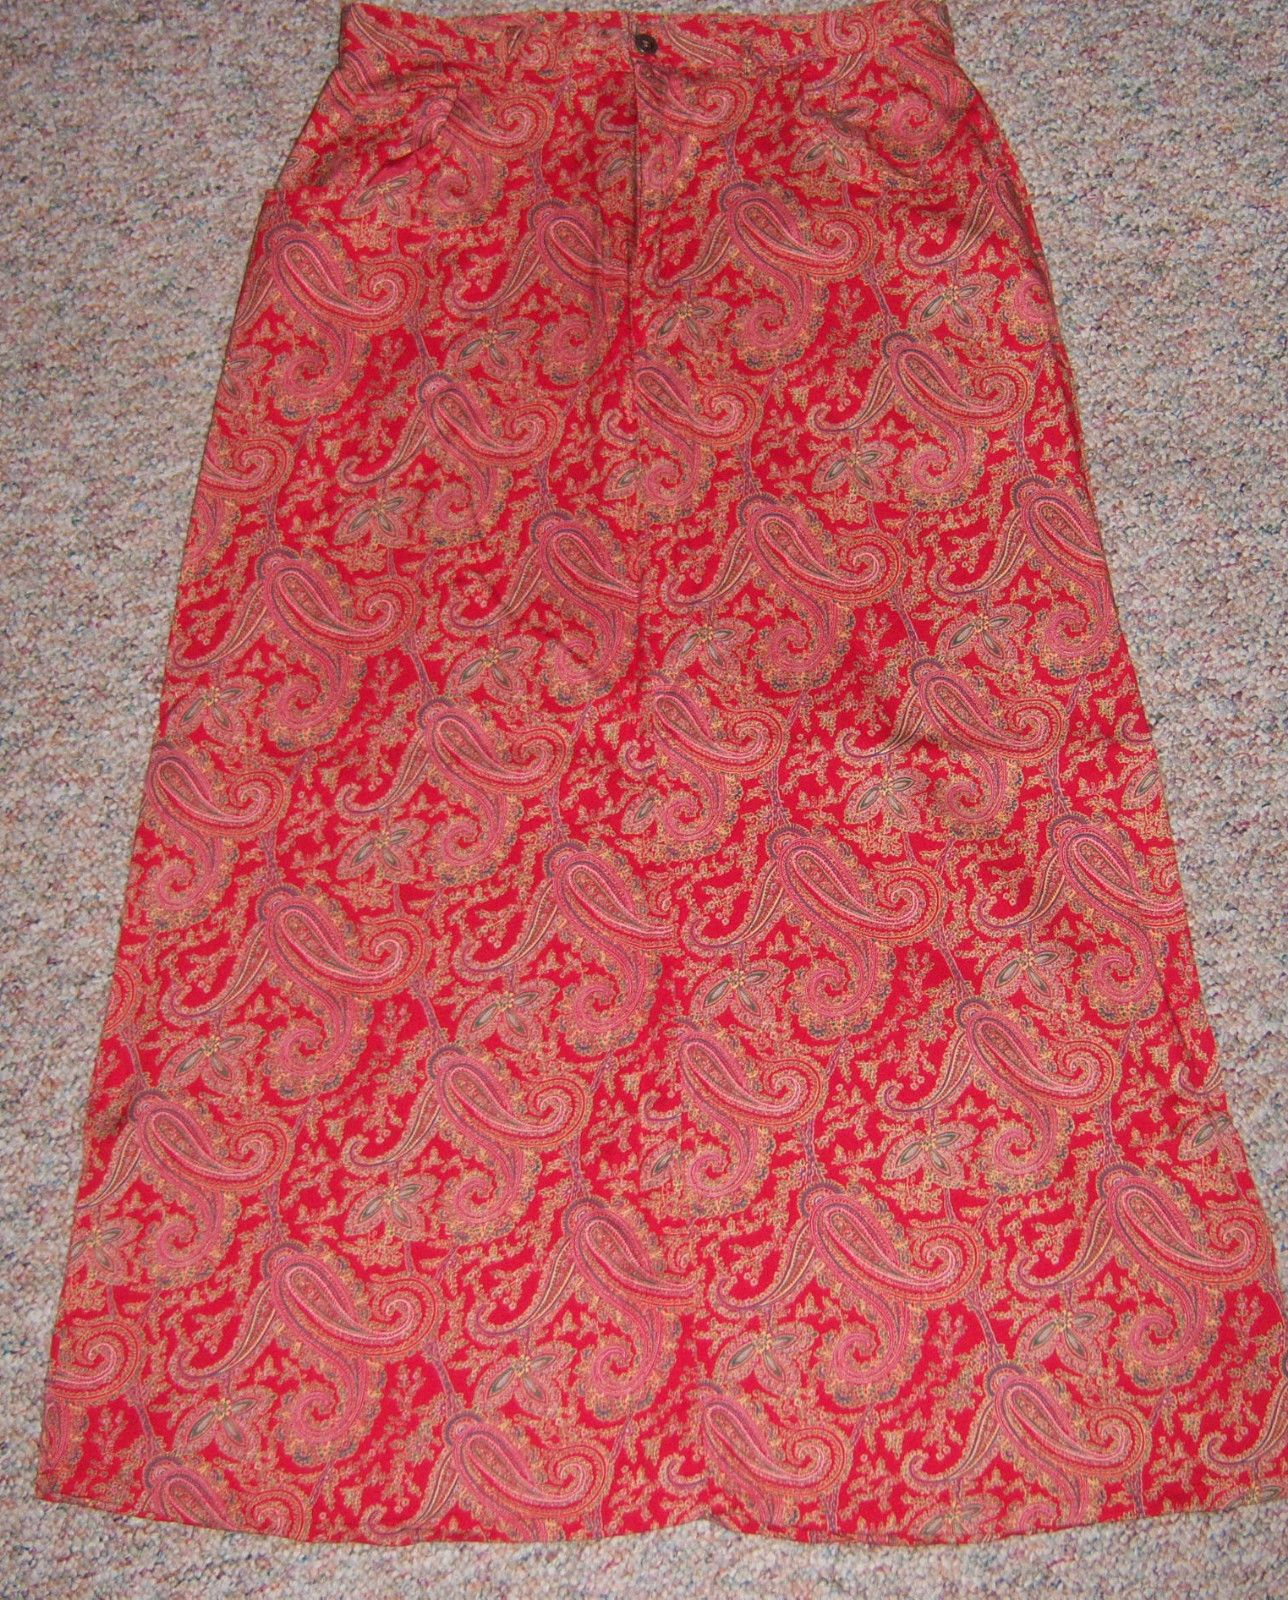 Awesome amazing liz claiborne red paisley print